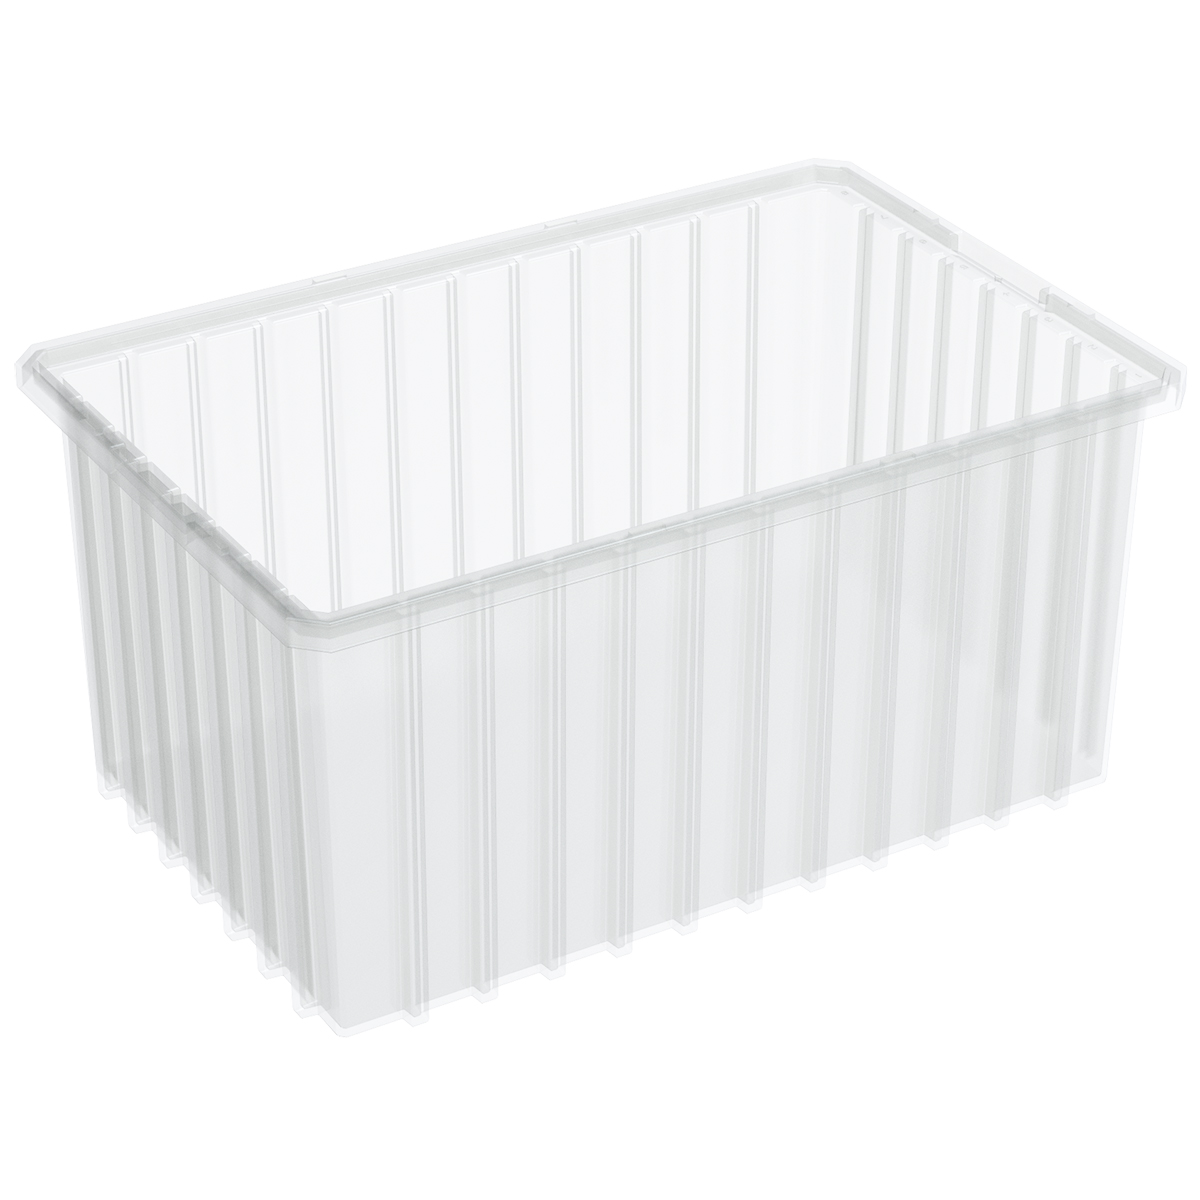 Akro-Grid Dividable Box 16-1/2 x 10-7/8 x 8, Clear (33168SCLAR).  This item sold in carton quantities of 6.